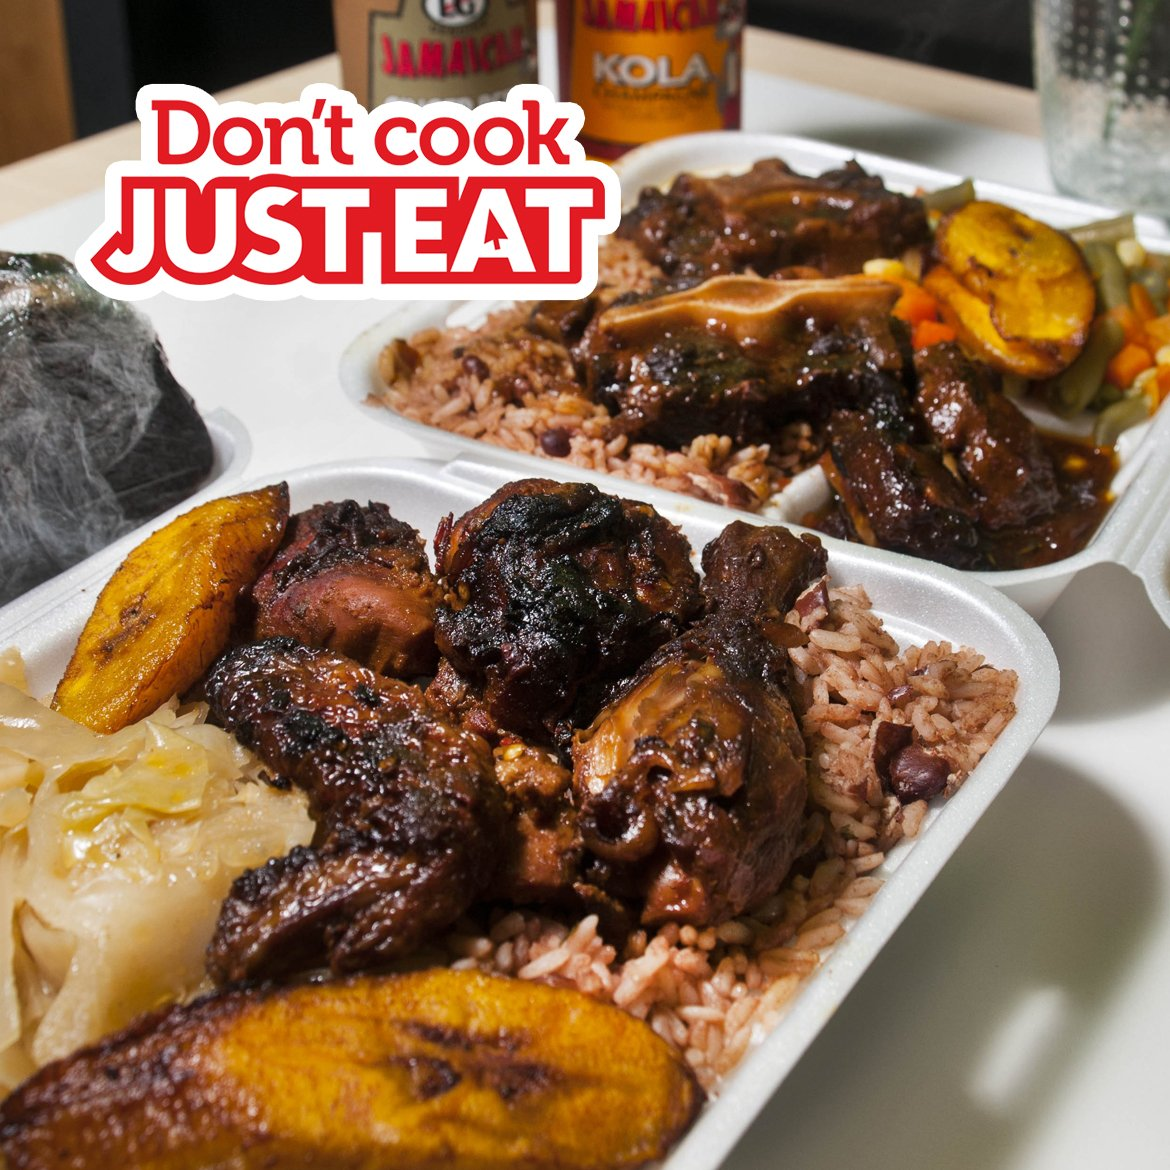 Moziahs On Twitter Get Your Orders In On Justeat And Have